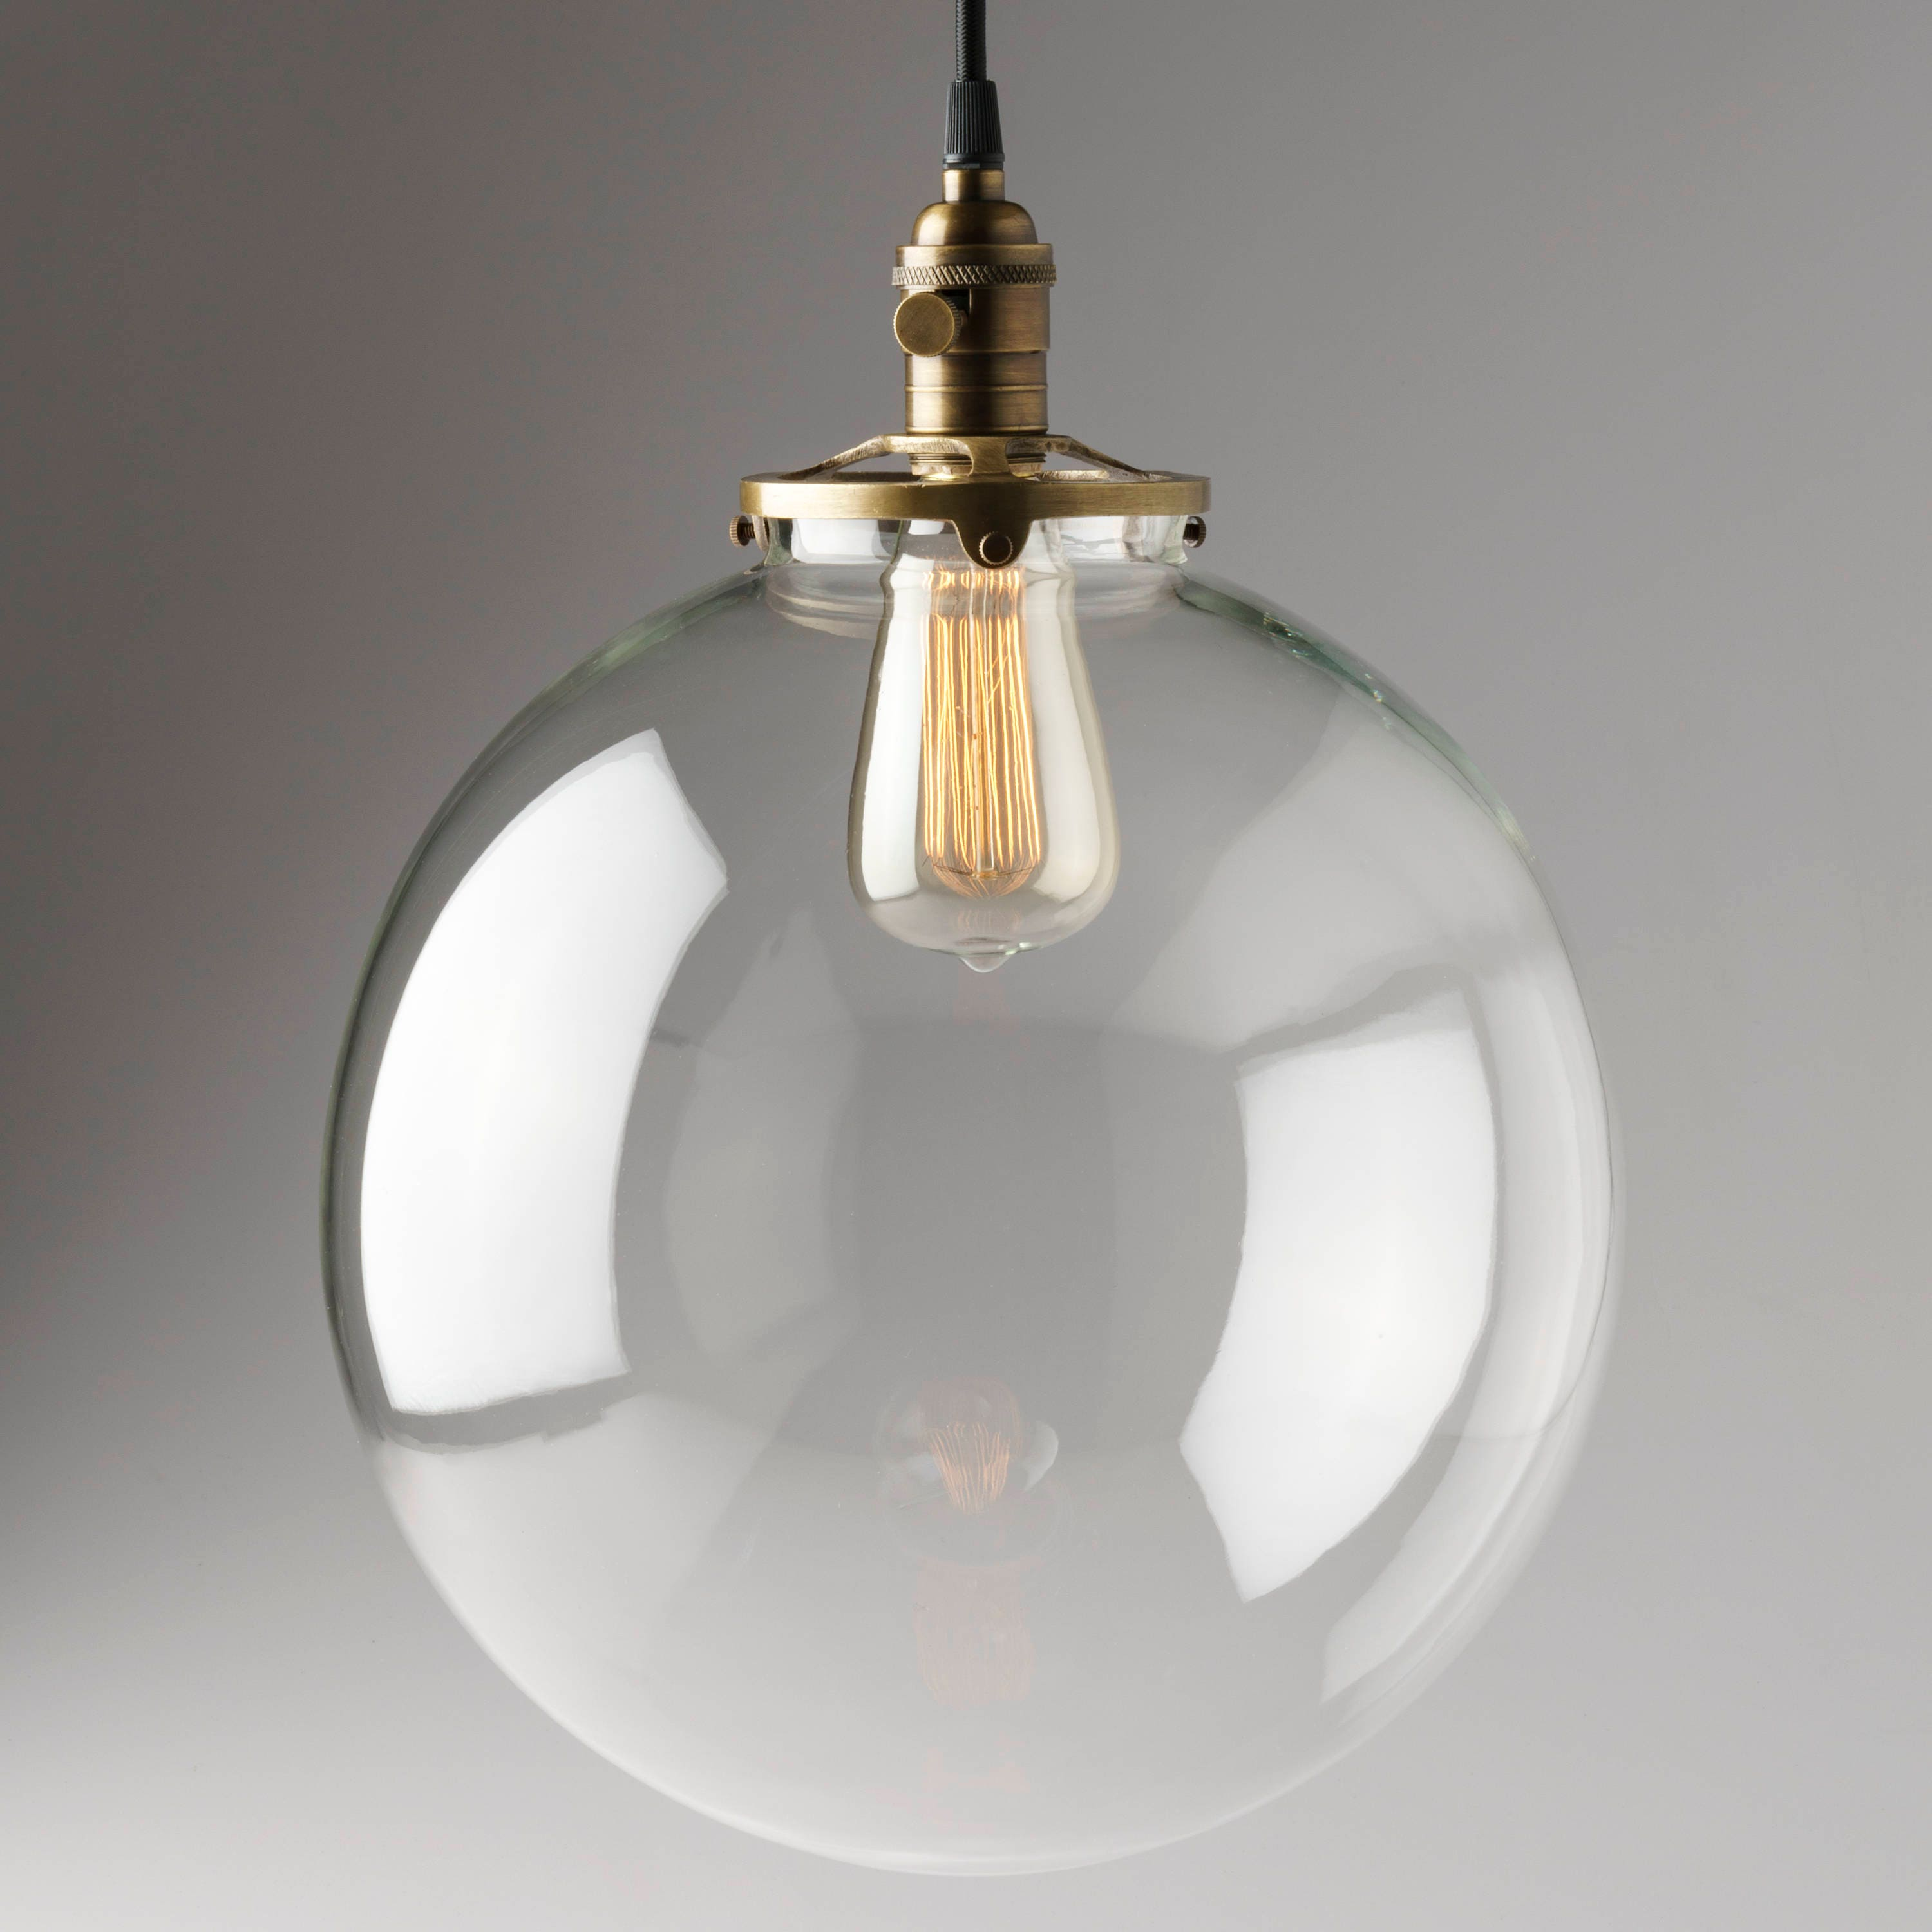 Hanging pendant light fixture with 12 glass globe shade description hanging pendant light fixture arubaitofo Gallery